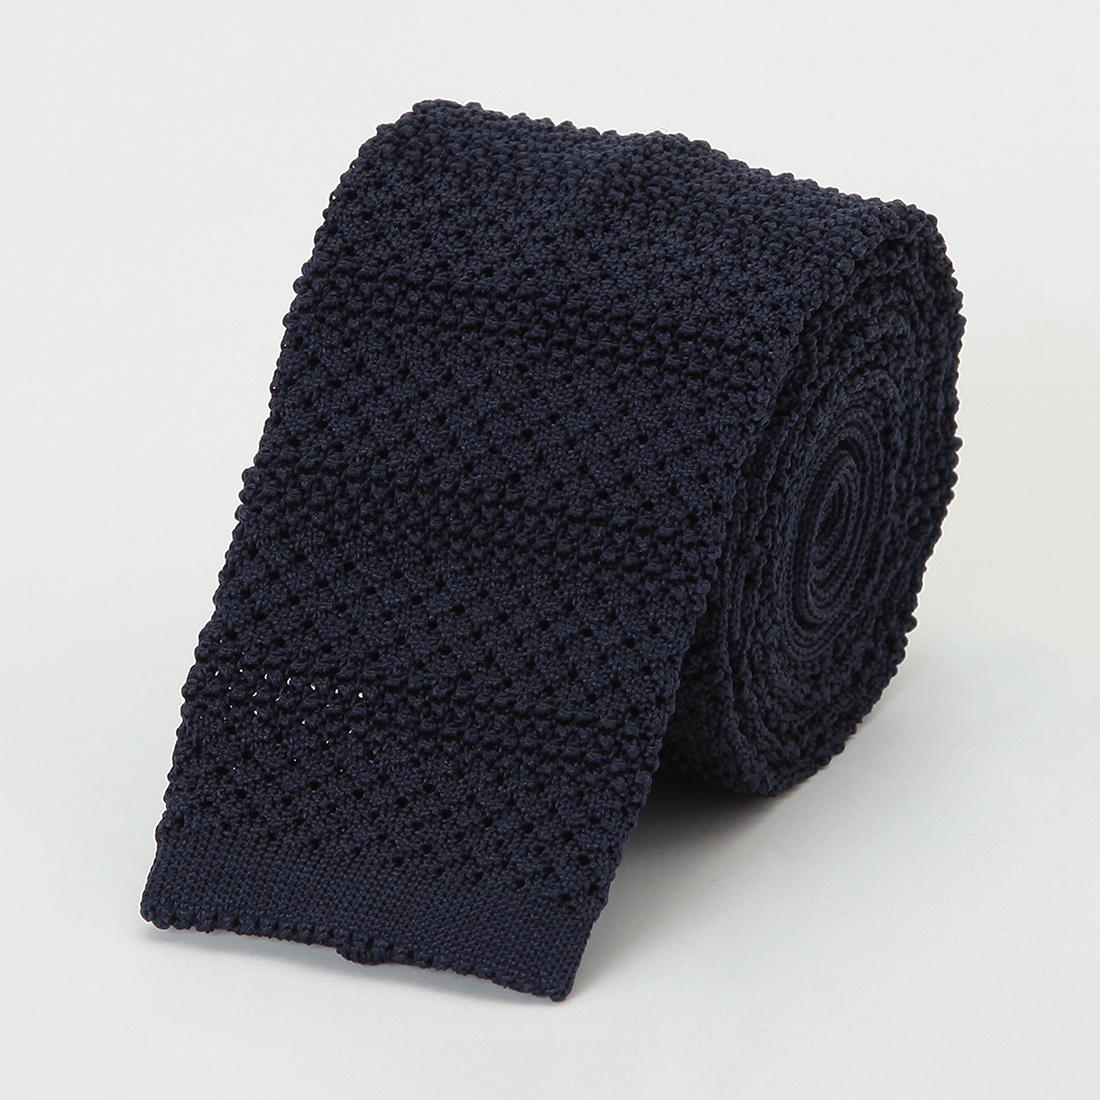 Barneys New York Silk Stripe Knit Tie 2011117: Navy